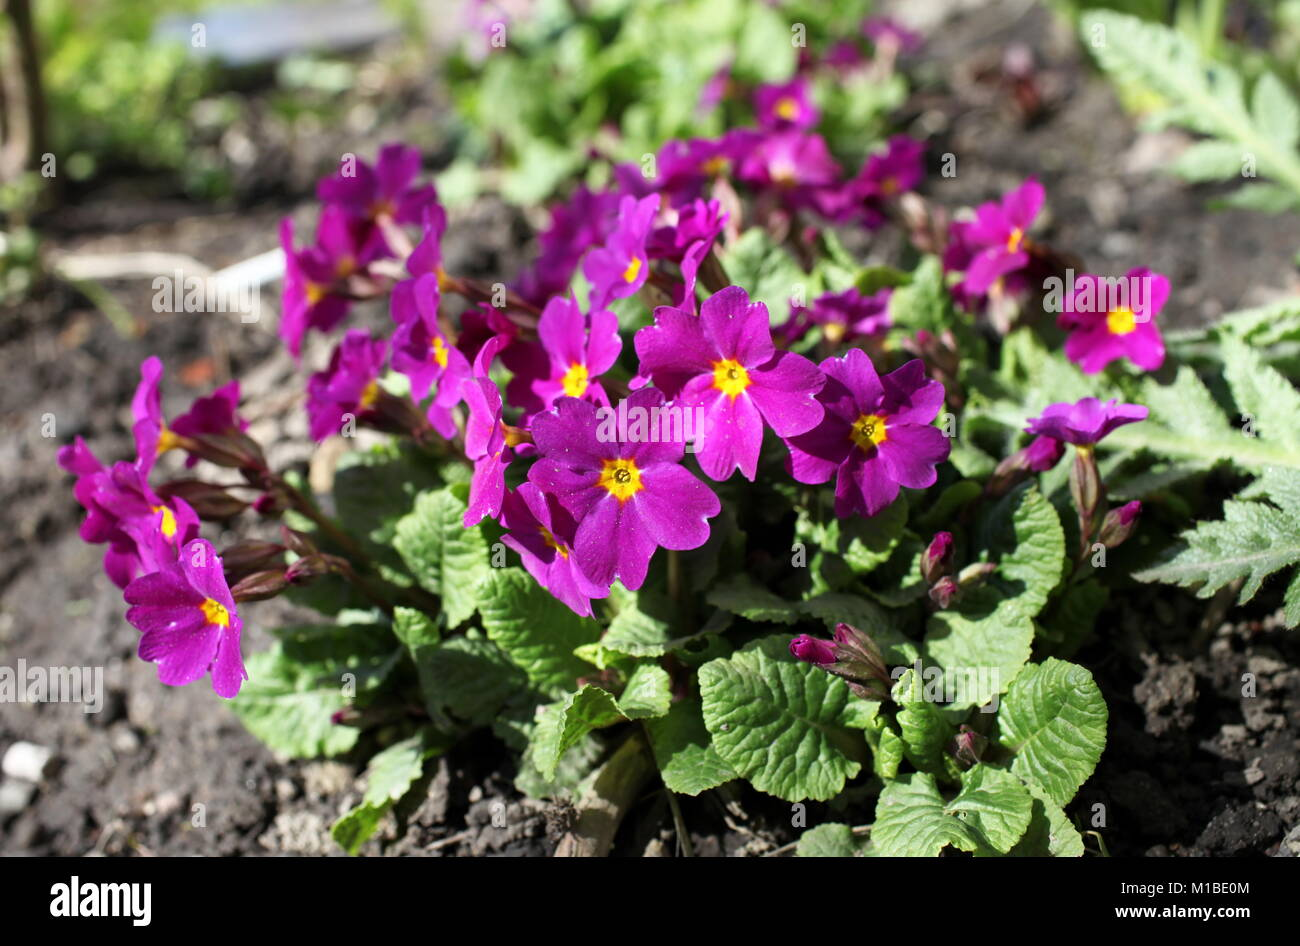 Spring First Rare Beautiful Flowers Primroses Stock Photo 172970804